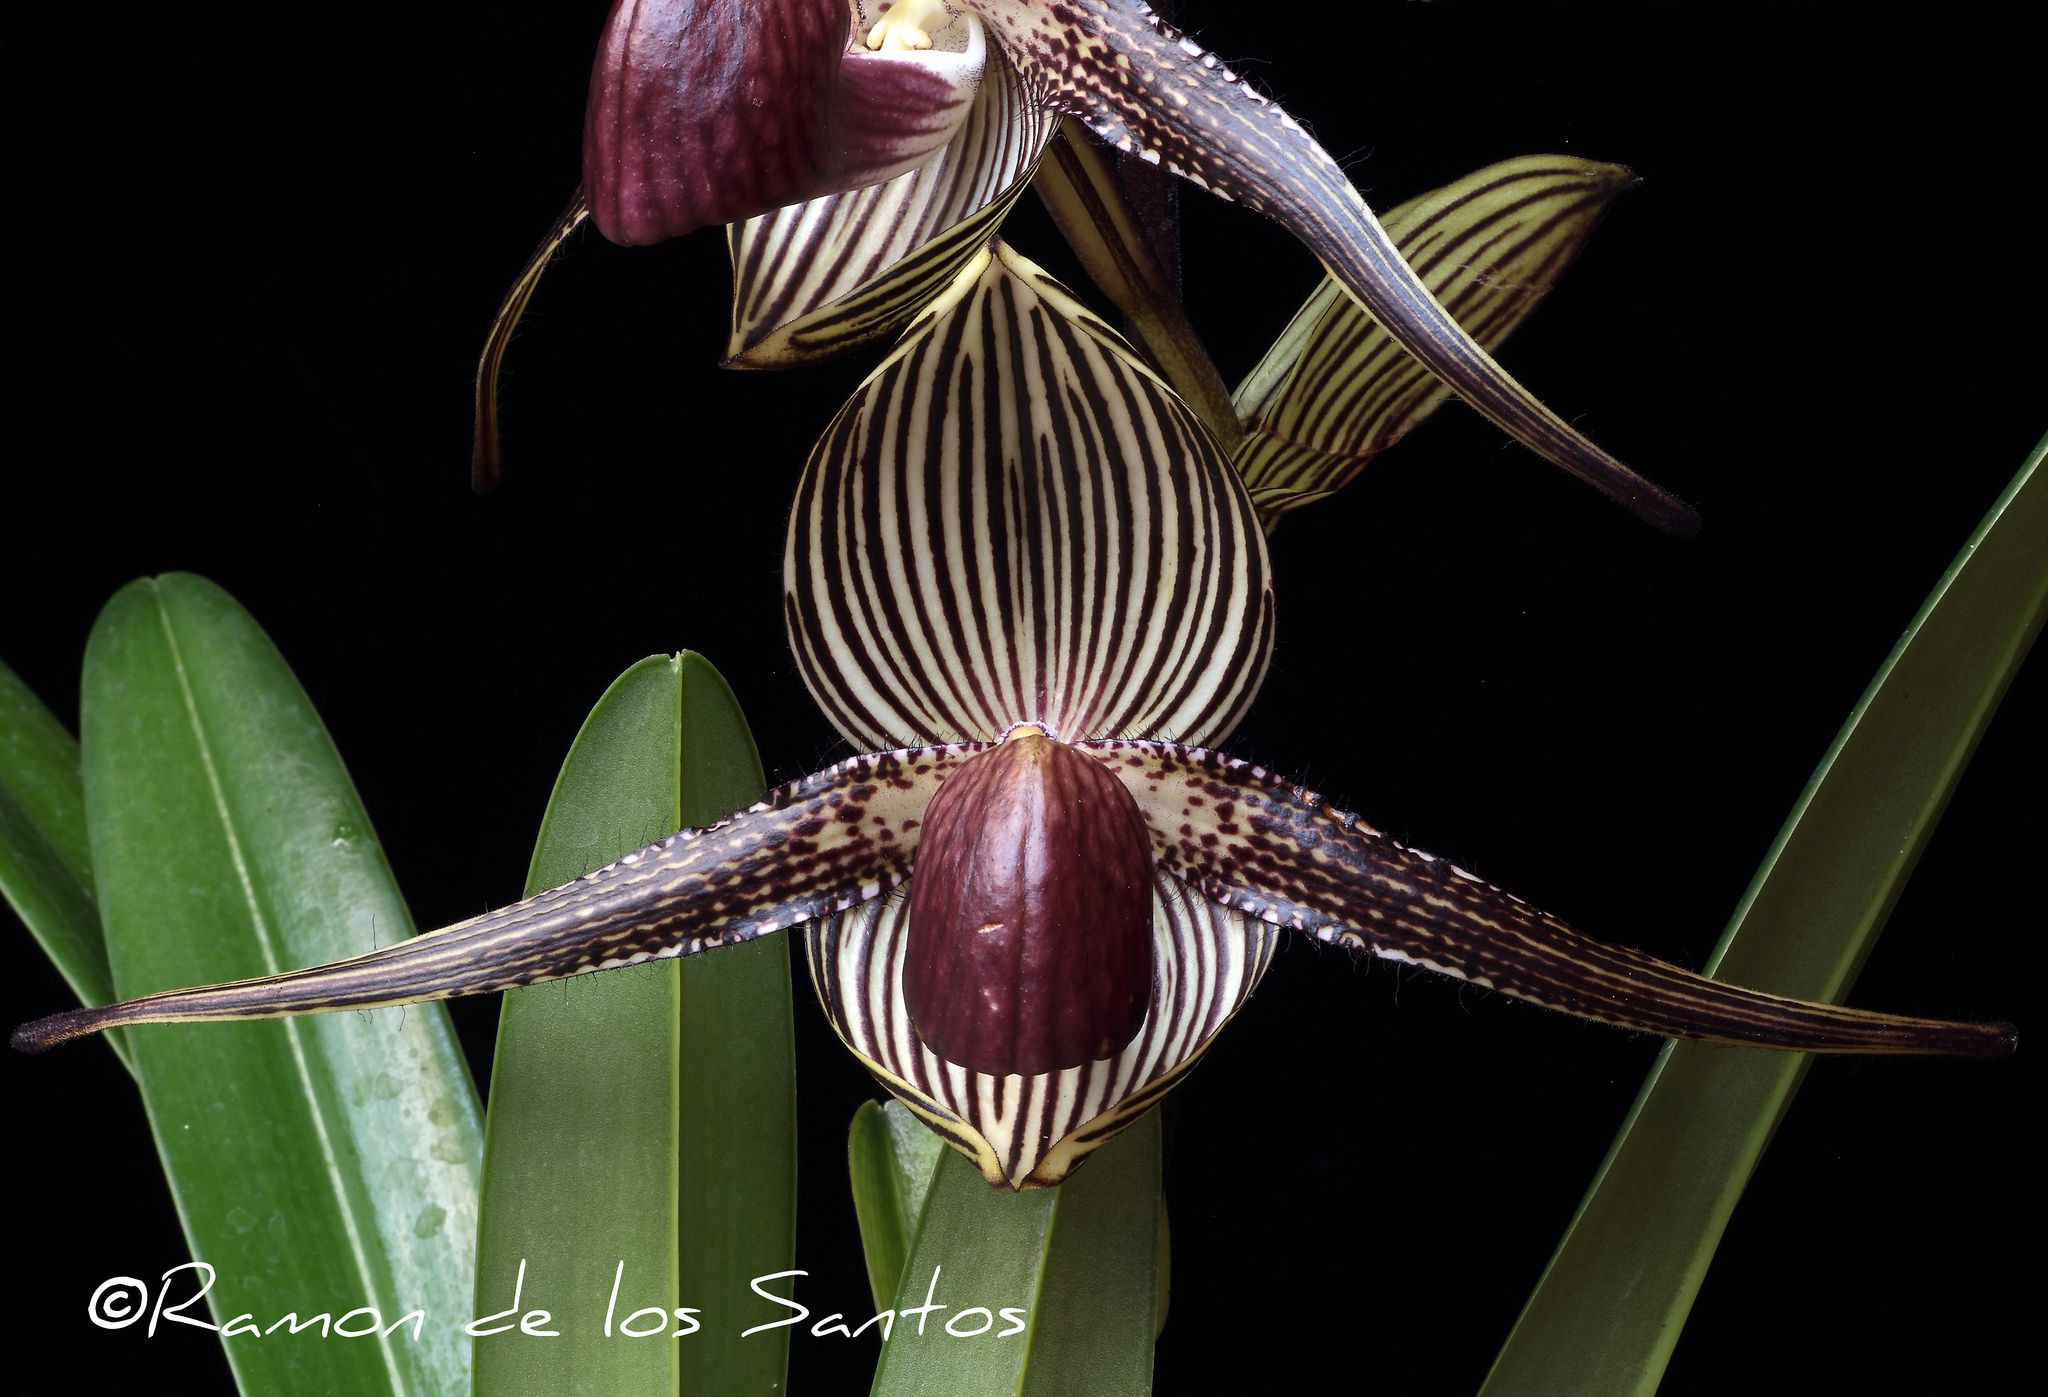 Flower Detail of Slipper orchid Paphiopedilum rothschildianum